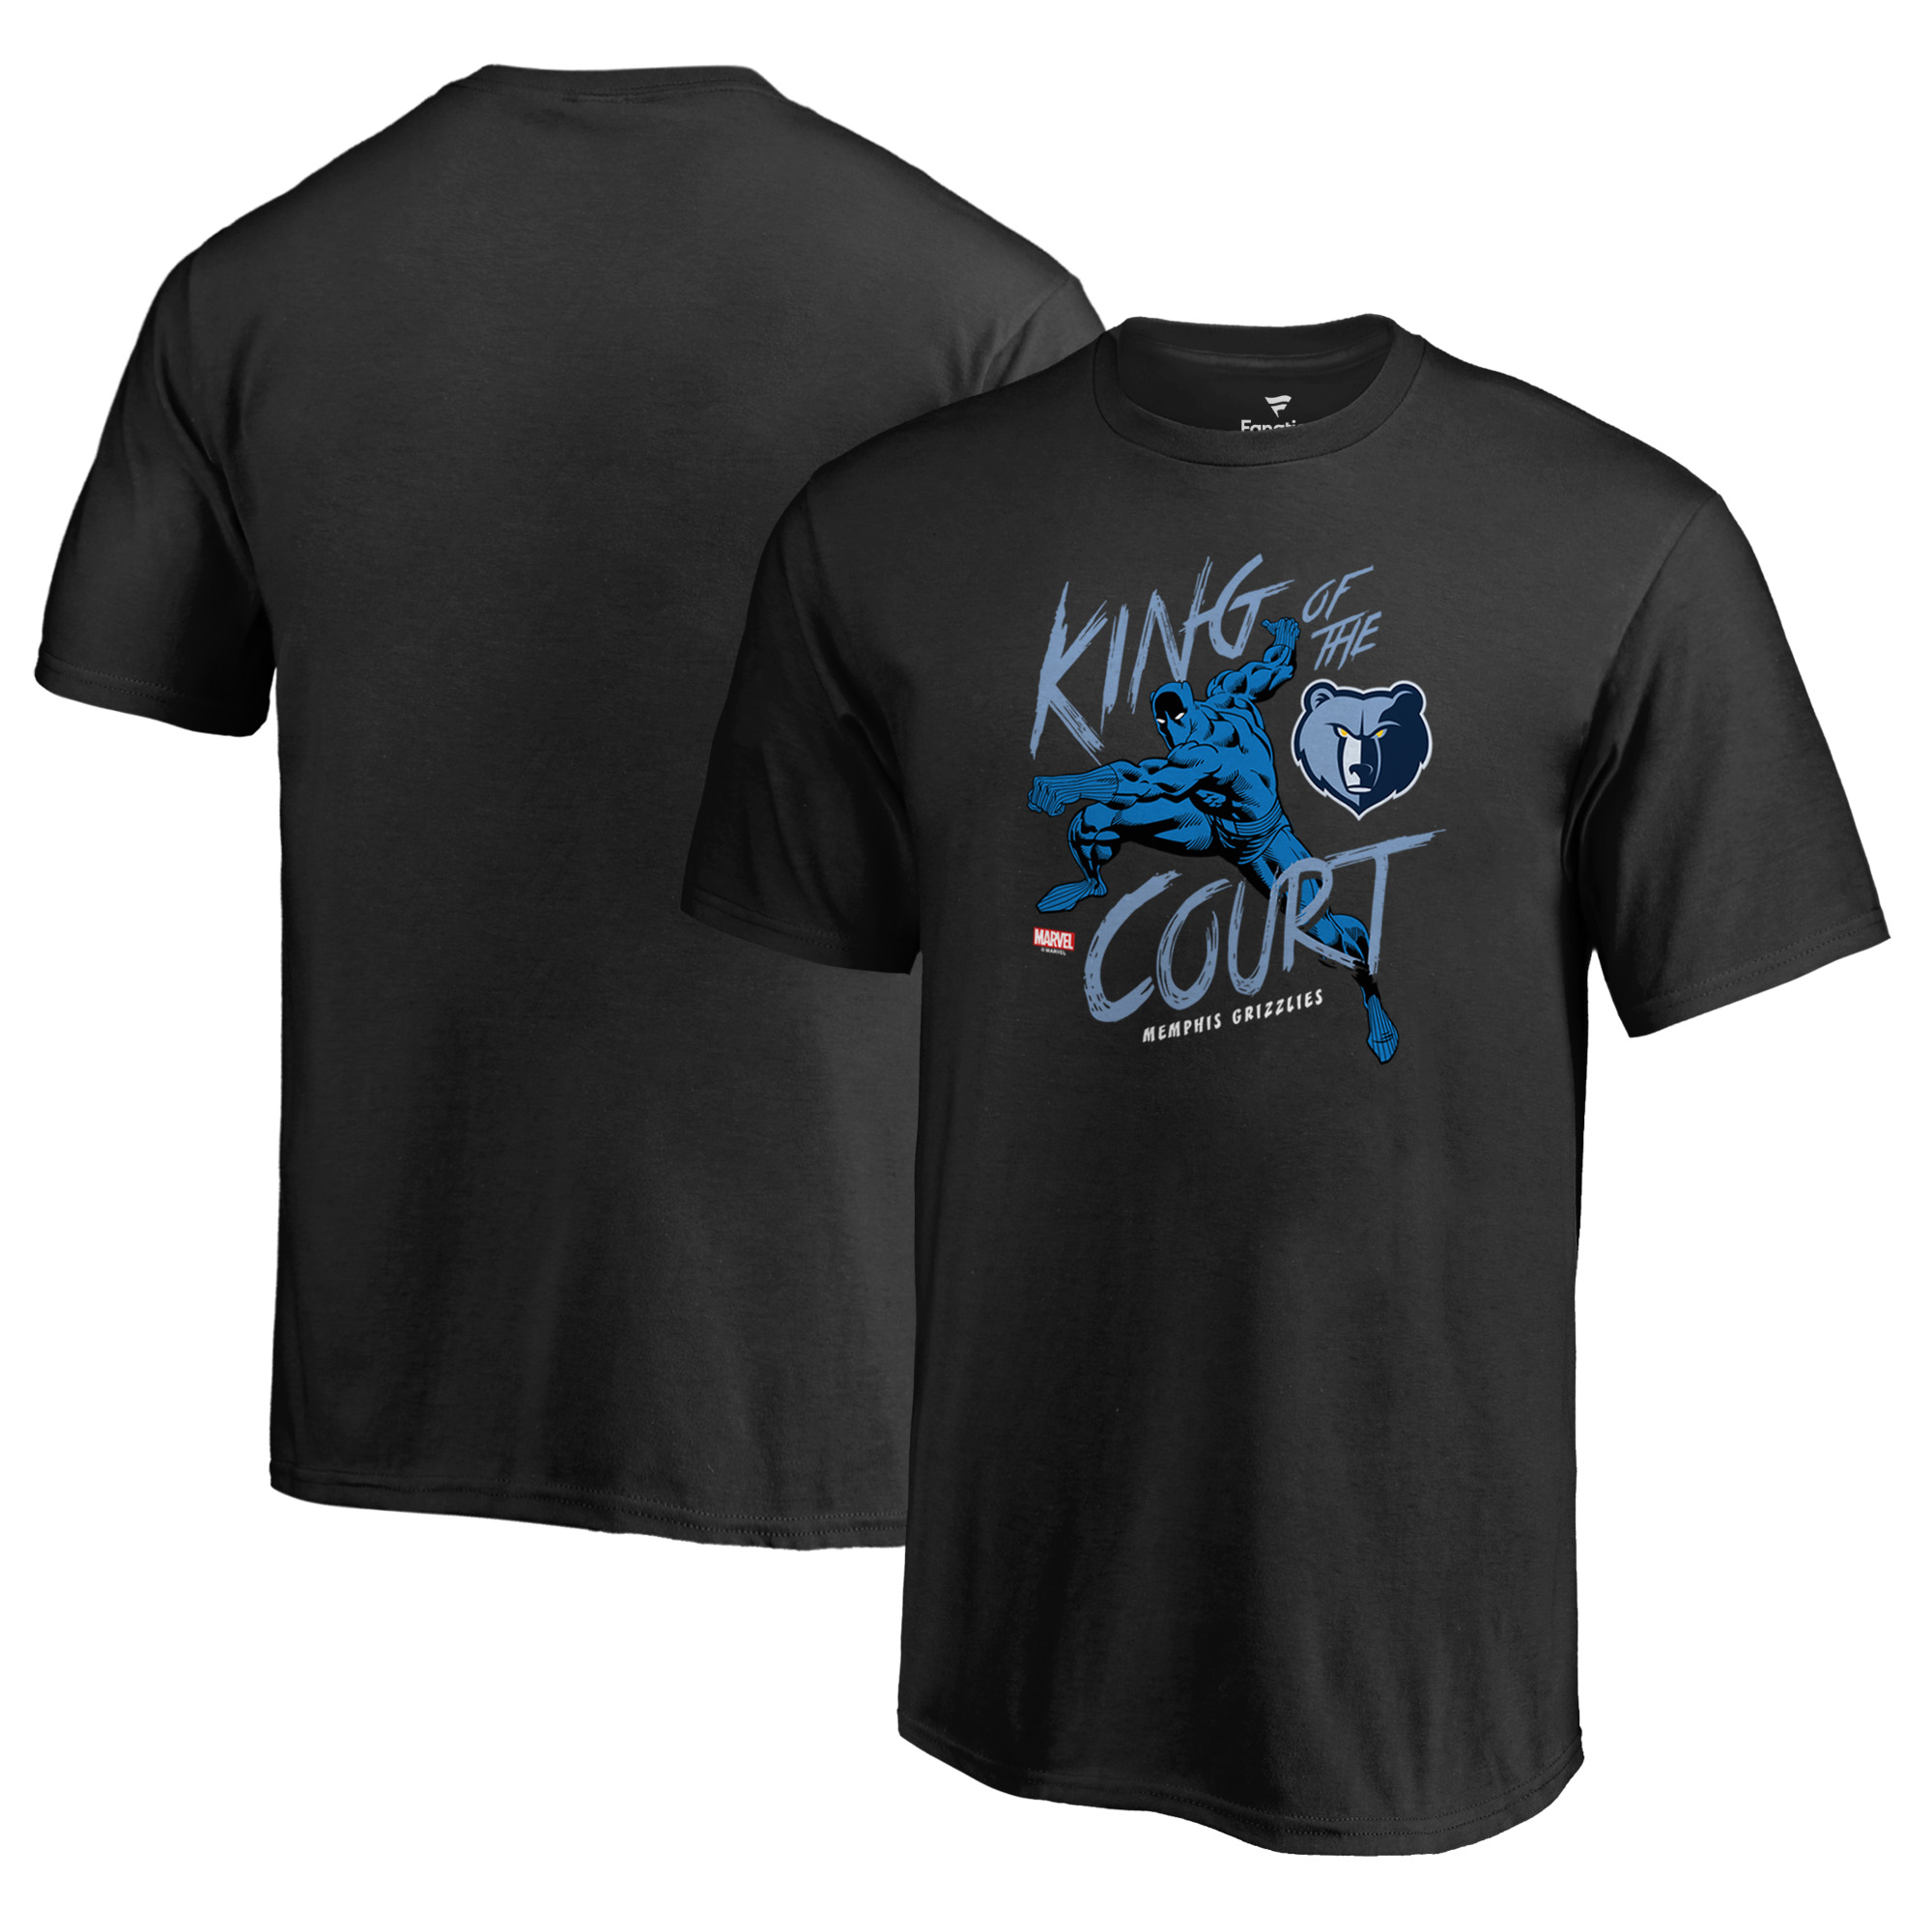 Memphis Grizzlies Fanatics Branded Youth Marvel Black Panther King of the Court T-Shirt - Black